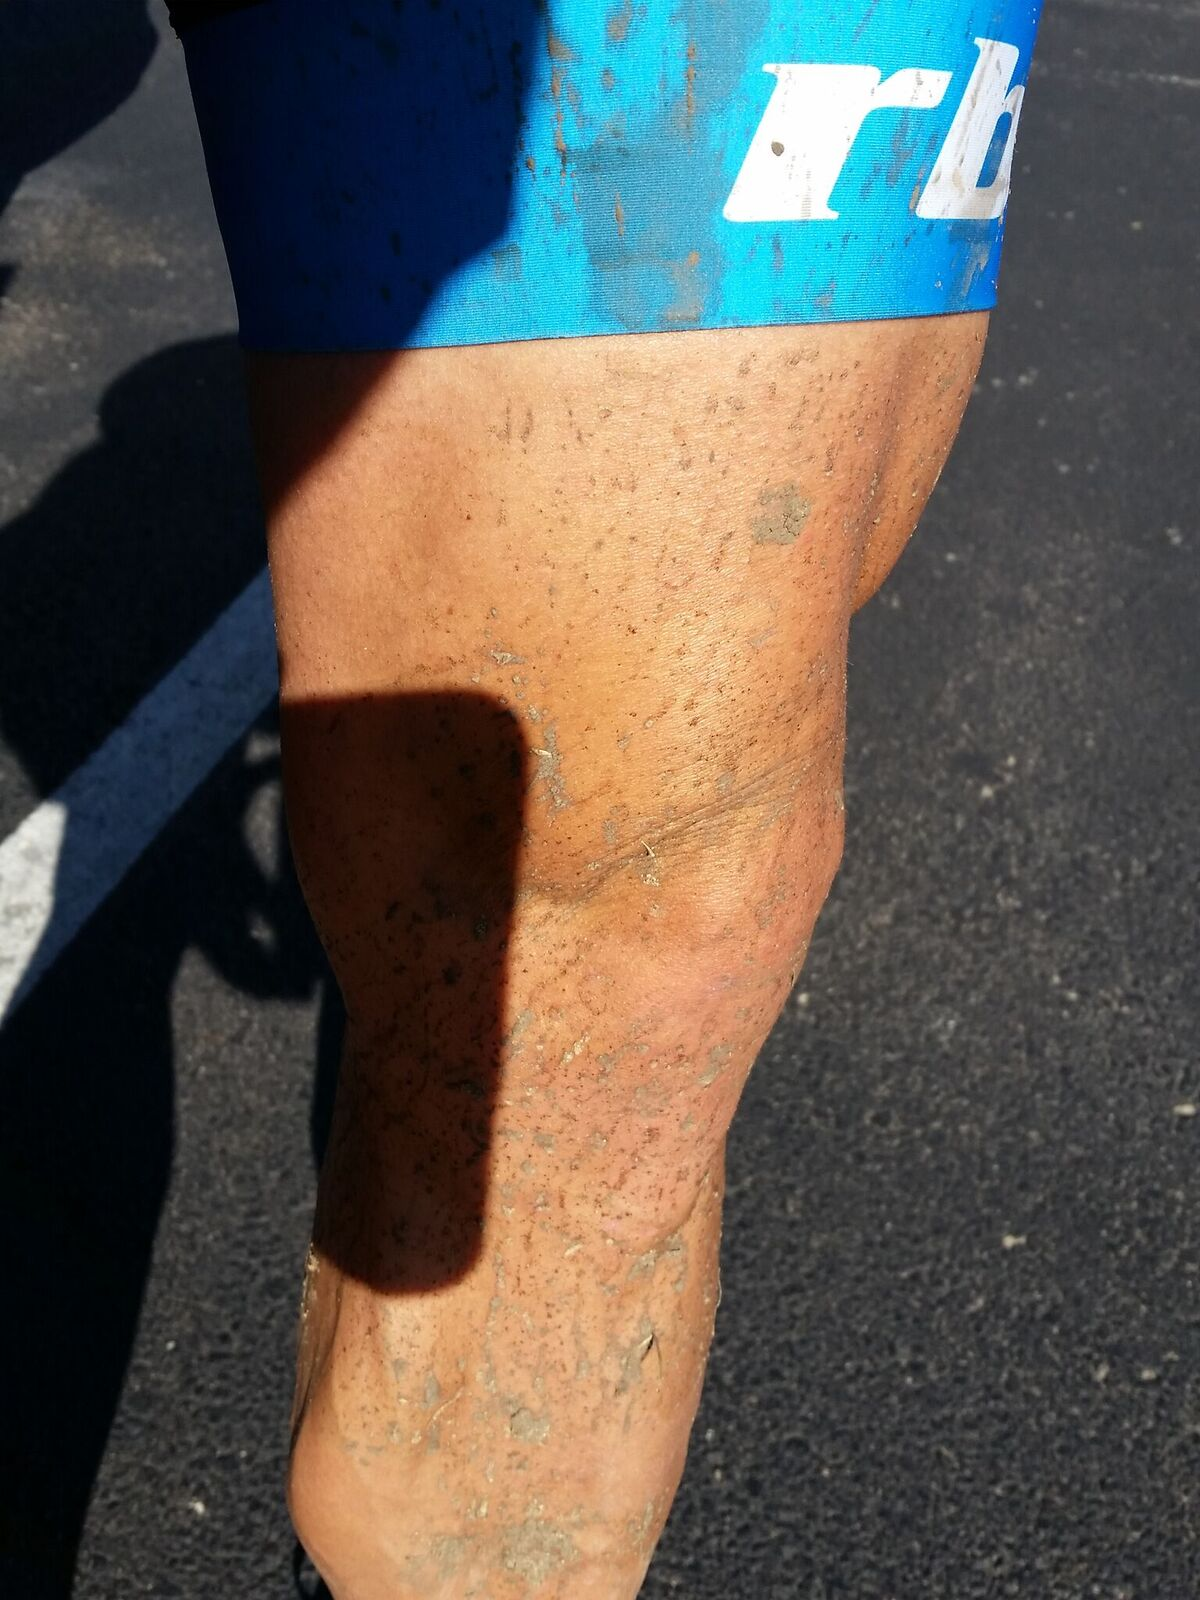 90% of the course was dry, but where there was mud, there was mud.